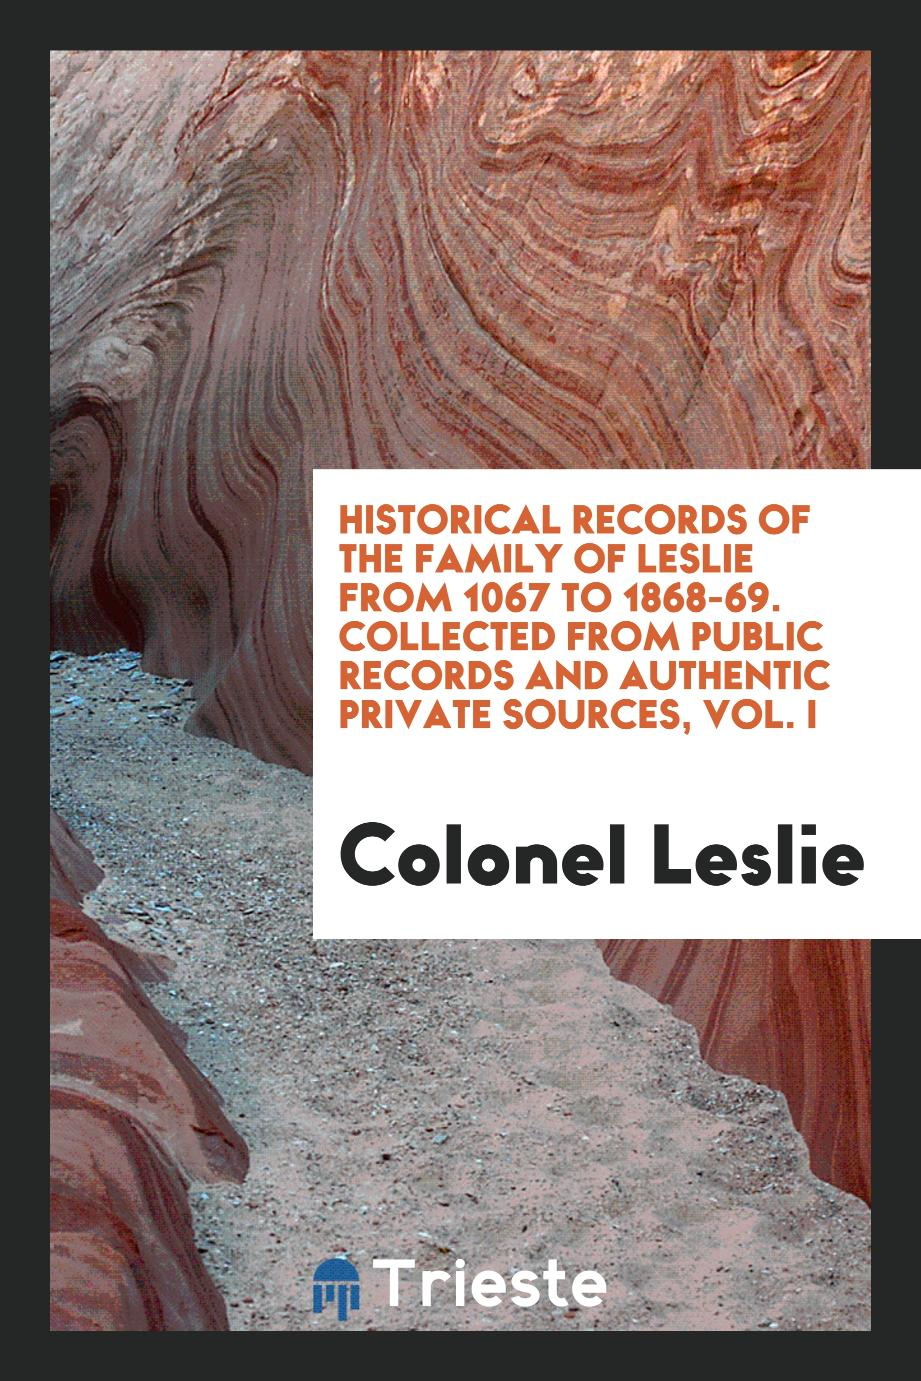 Historical records of the family of Leslie from 1067 to 1868-69. Collected from public records and authentic private sources, Vol. I